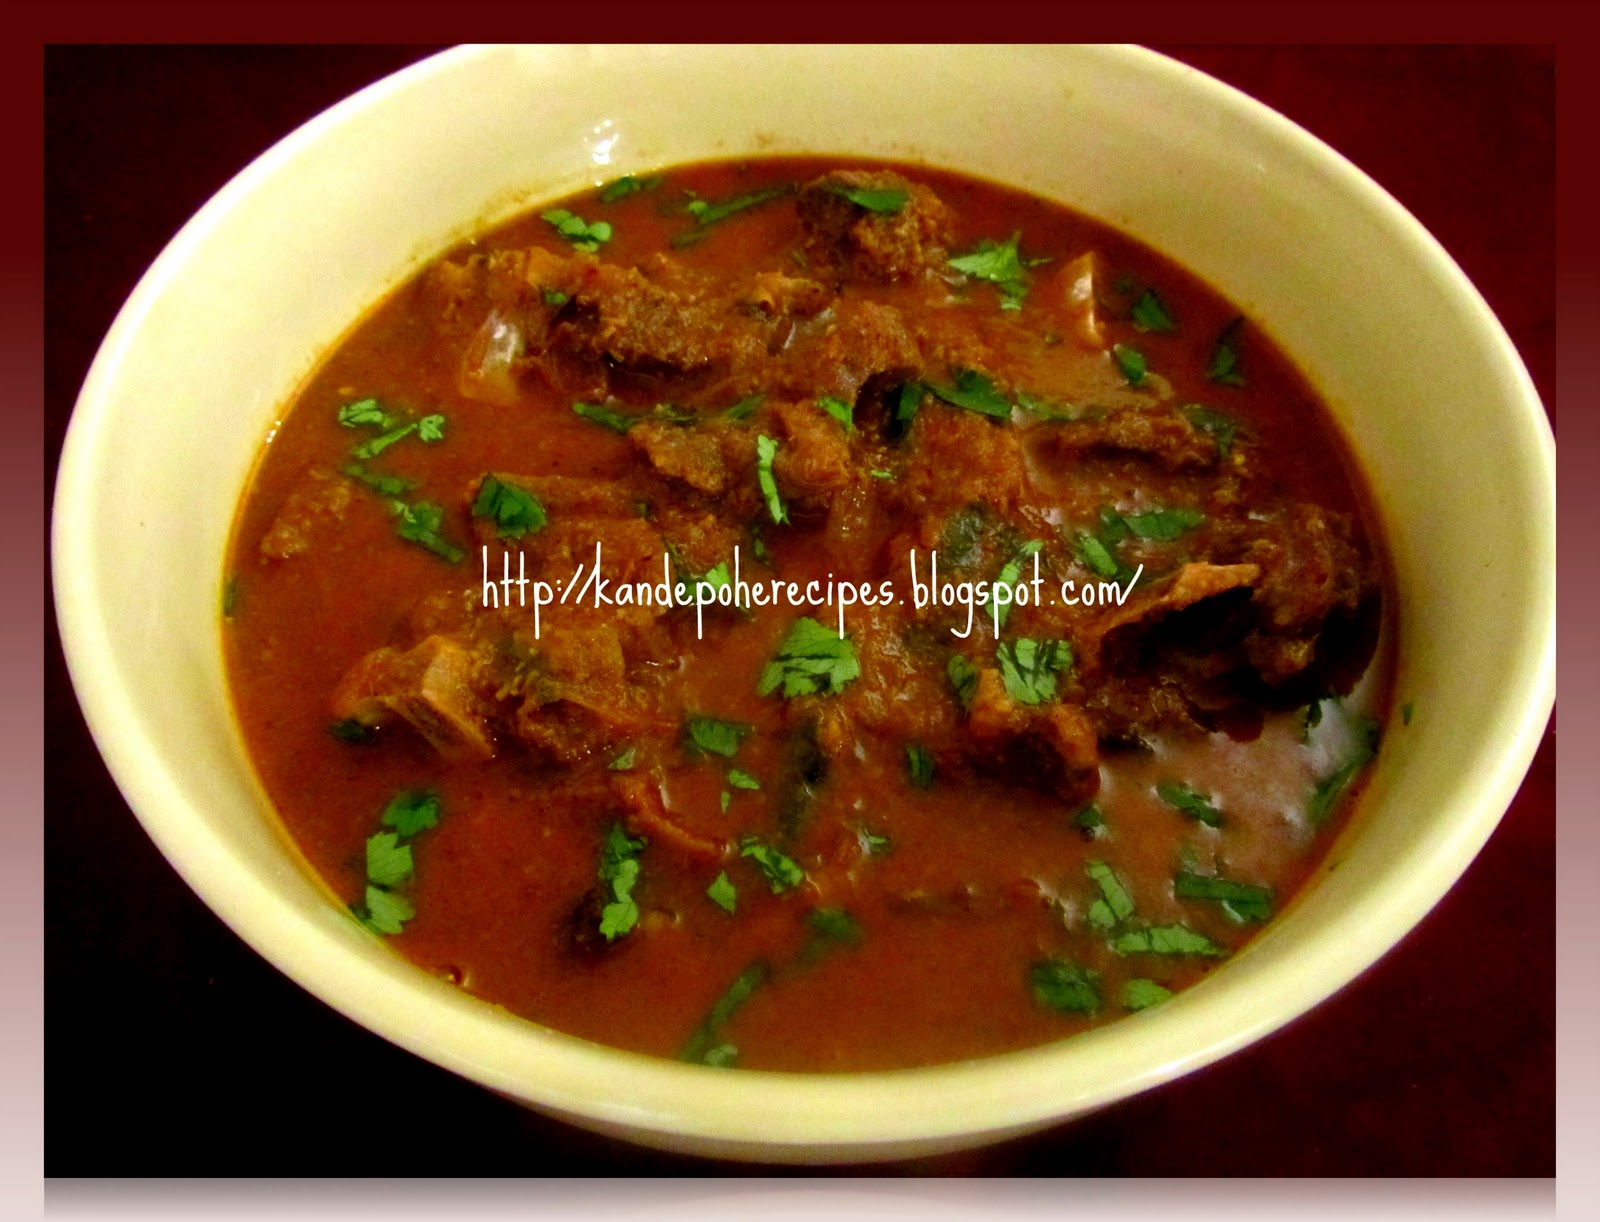 lamb curry / Kolhapuri tambda rassa / Spicy Mutton Curry / Mutton ...